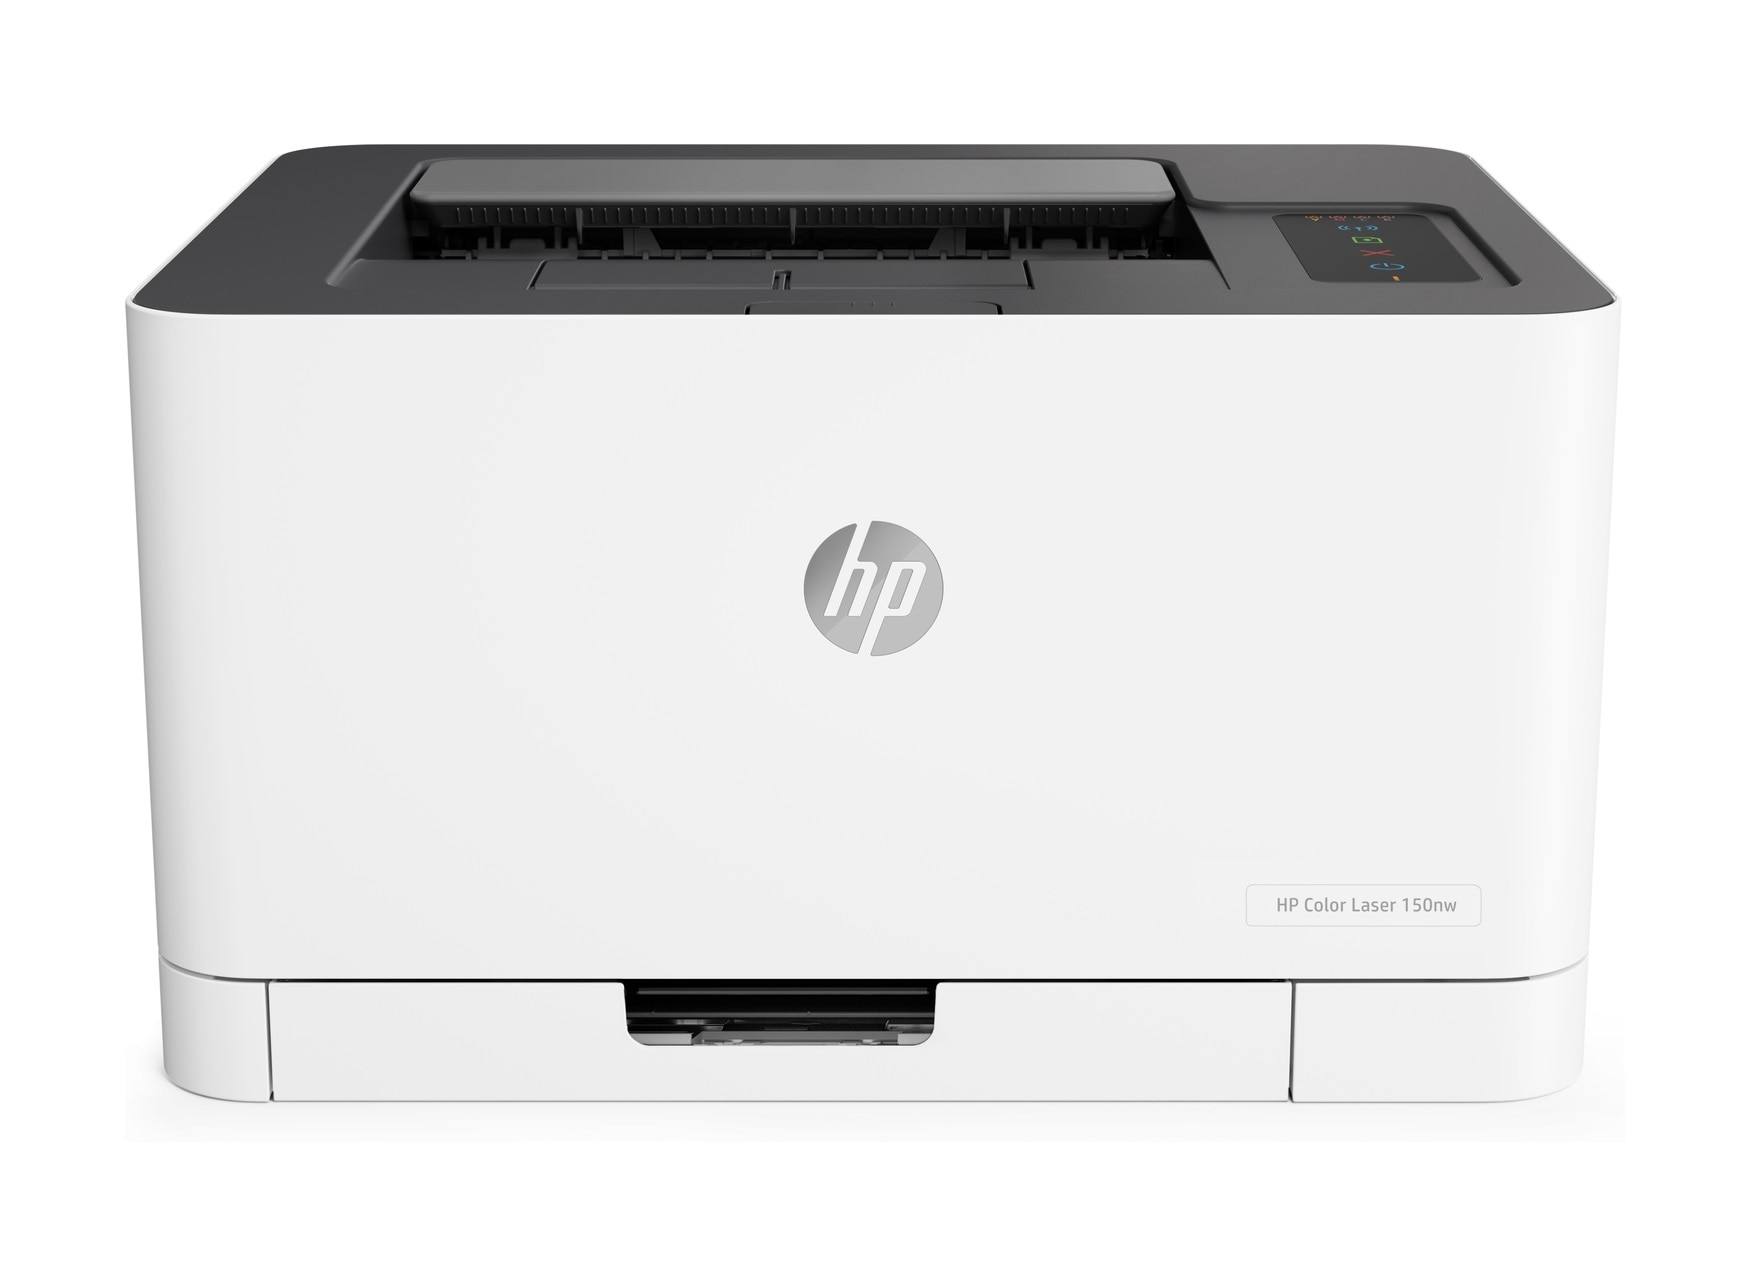 HP Color Laser 150nw Wireless printer